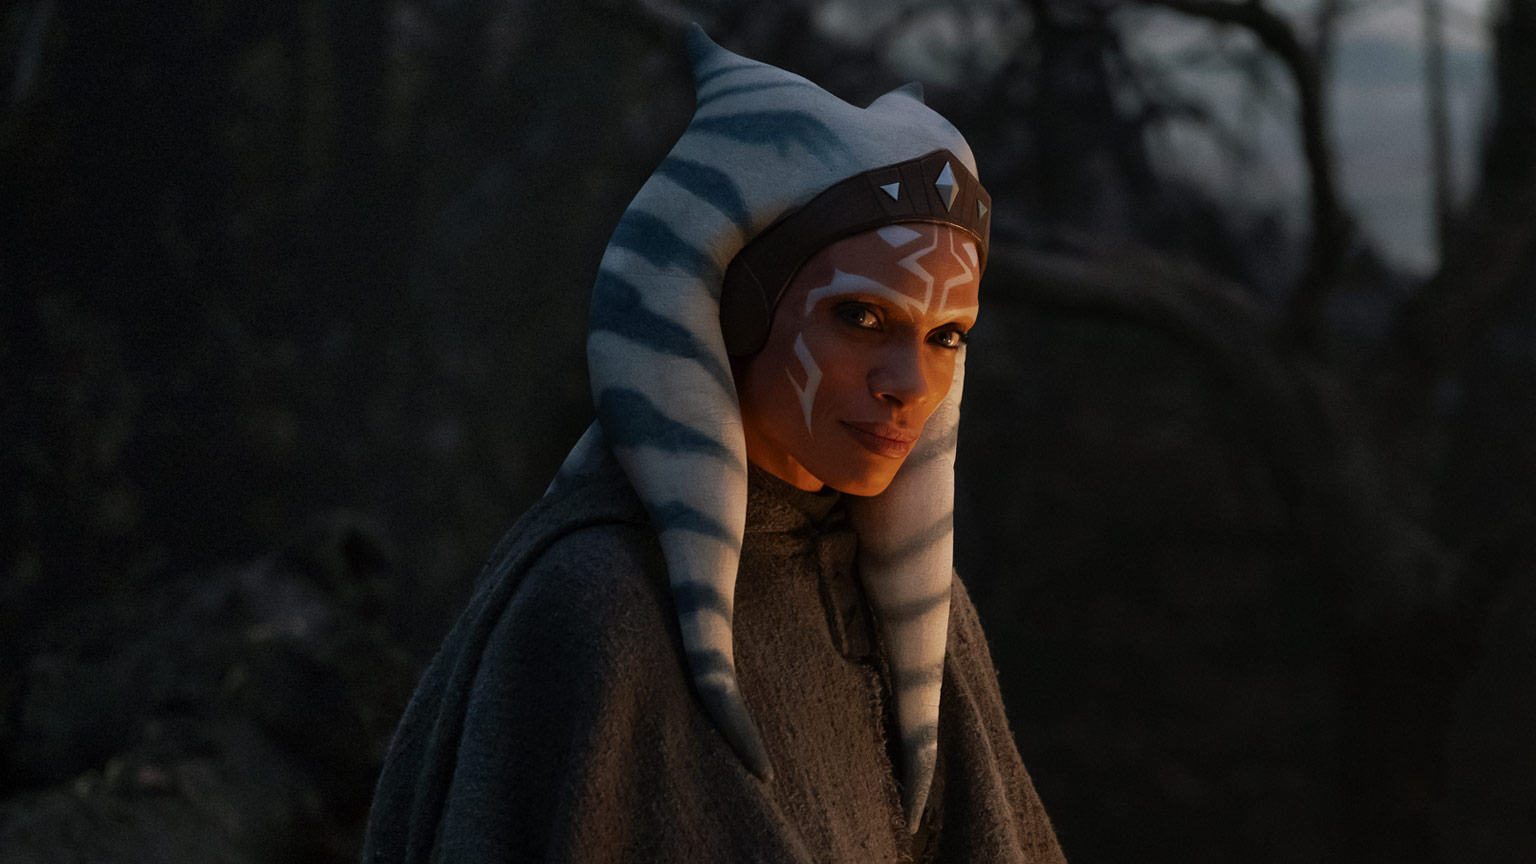 """Rosario Dawson — the actress who plays the live-action version of Ahsoka Tano — recently told StarWars.com that she would be interested in returning to the """"Star Wars"""" franchise as Ahsoka Tano."""